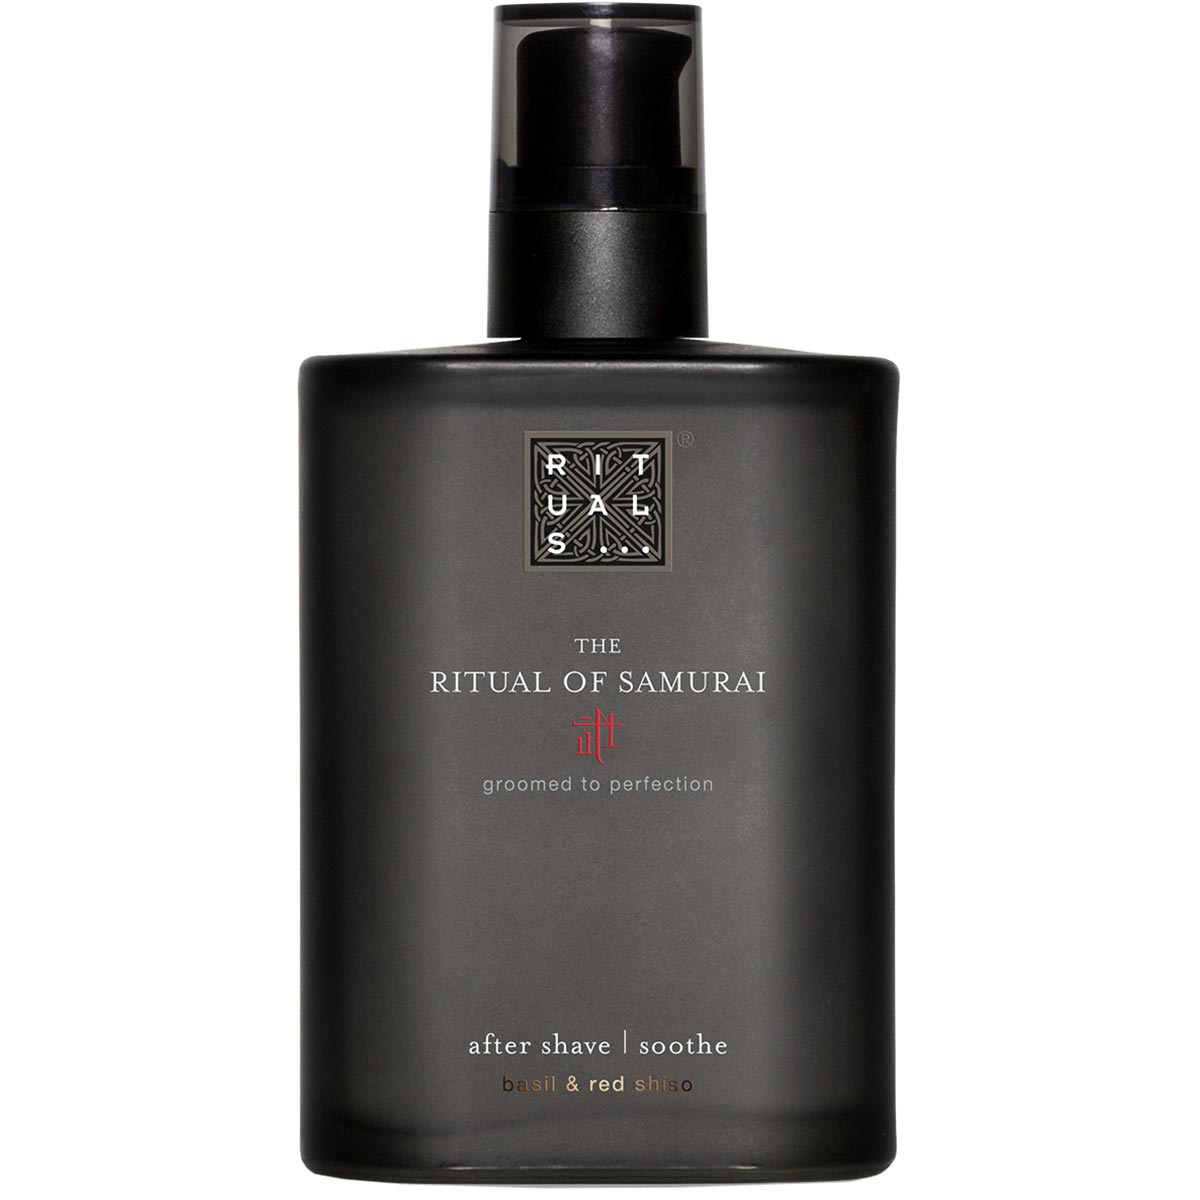 Rituals... The Ritual of Samurai After Shave Soothing Balm